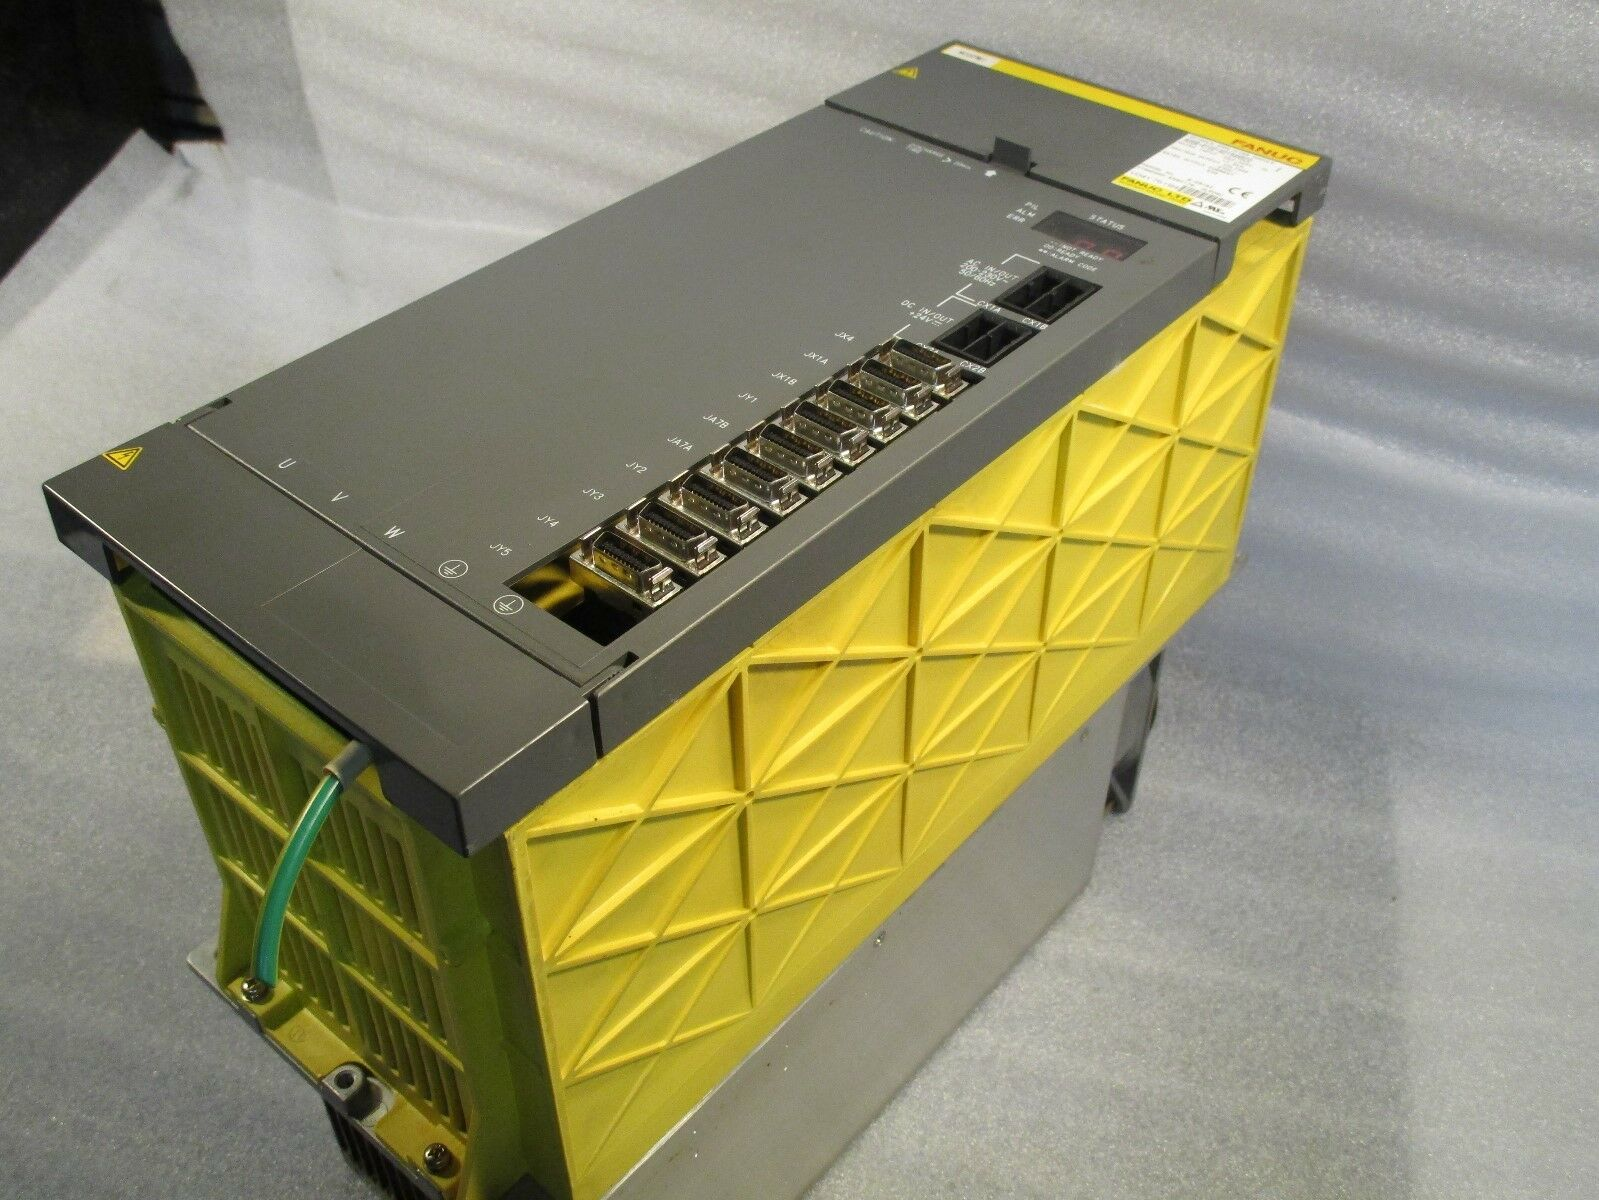 Fanuc A06B-6102-H215 #H520 Spindle Drive, Spindle Amp